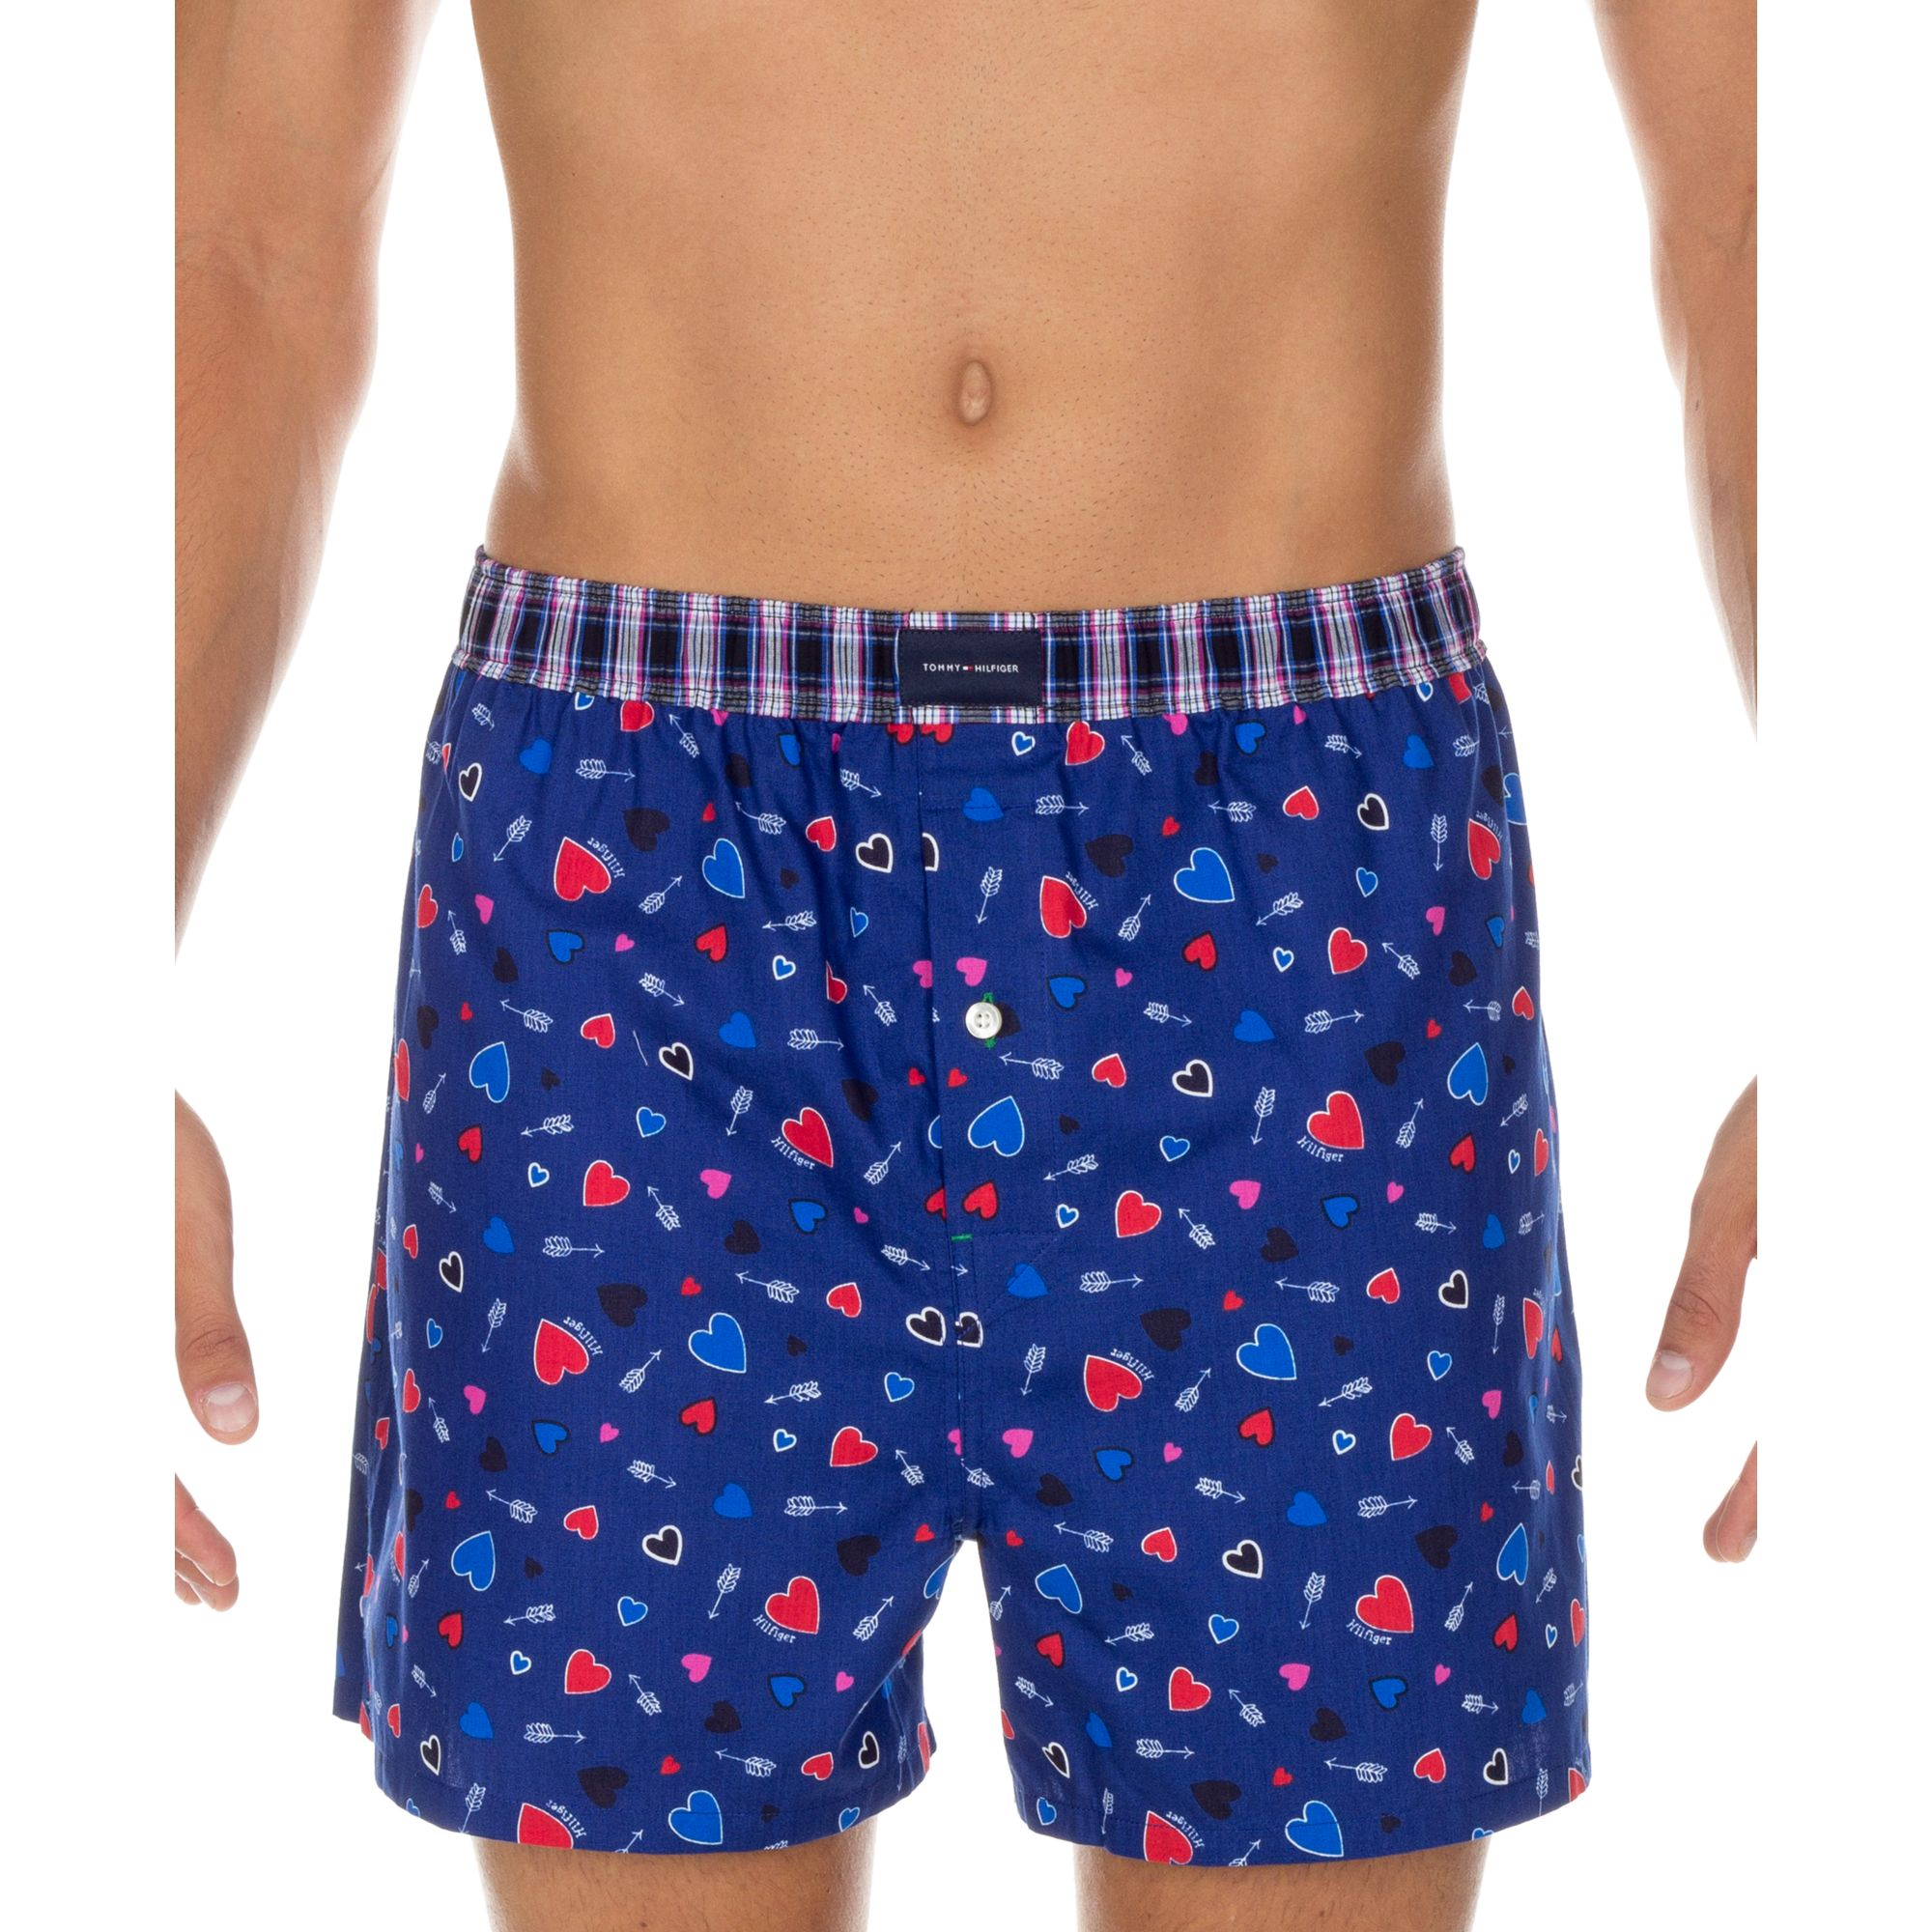 91f4021c90fe Clothing Tommy Hilfiger Mens Underwear Woven Boxers